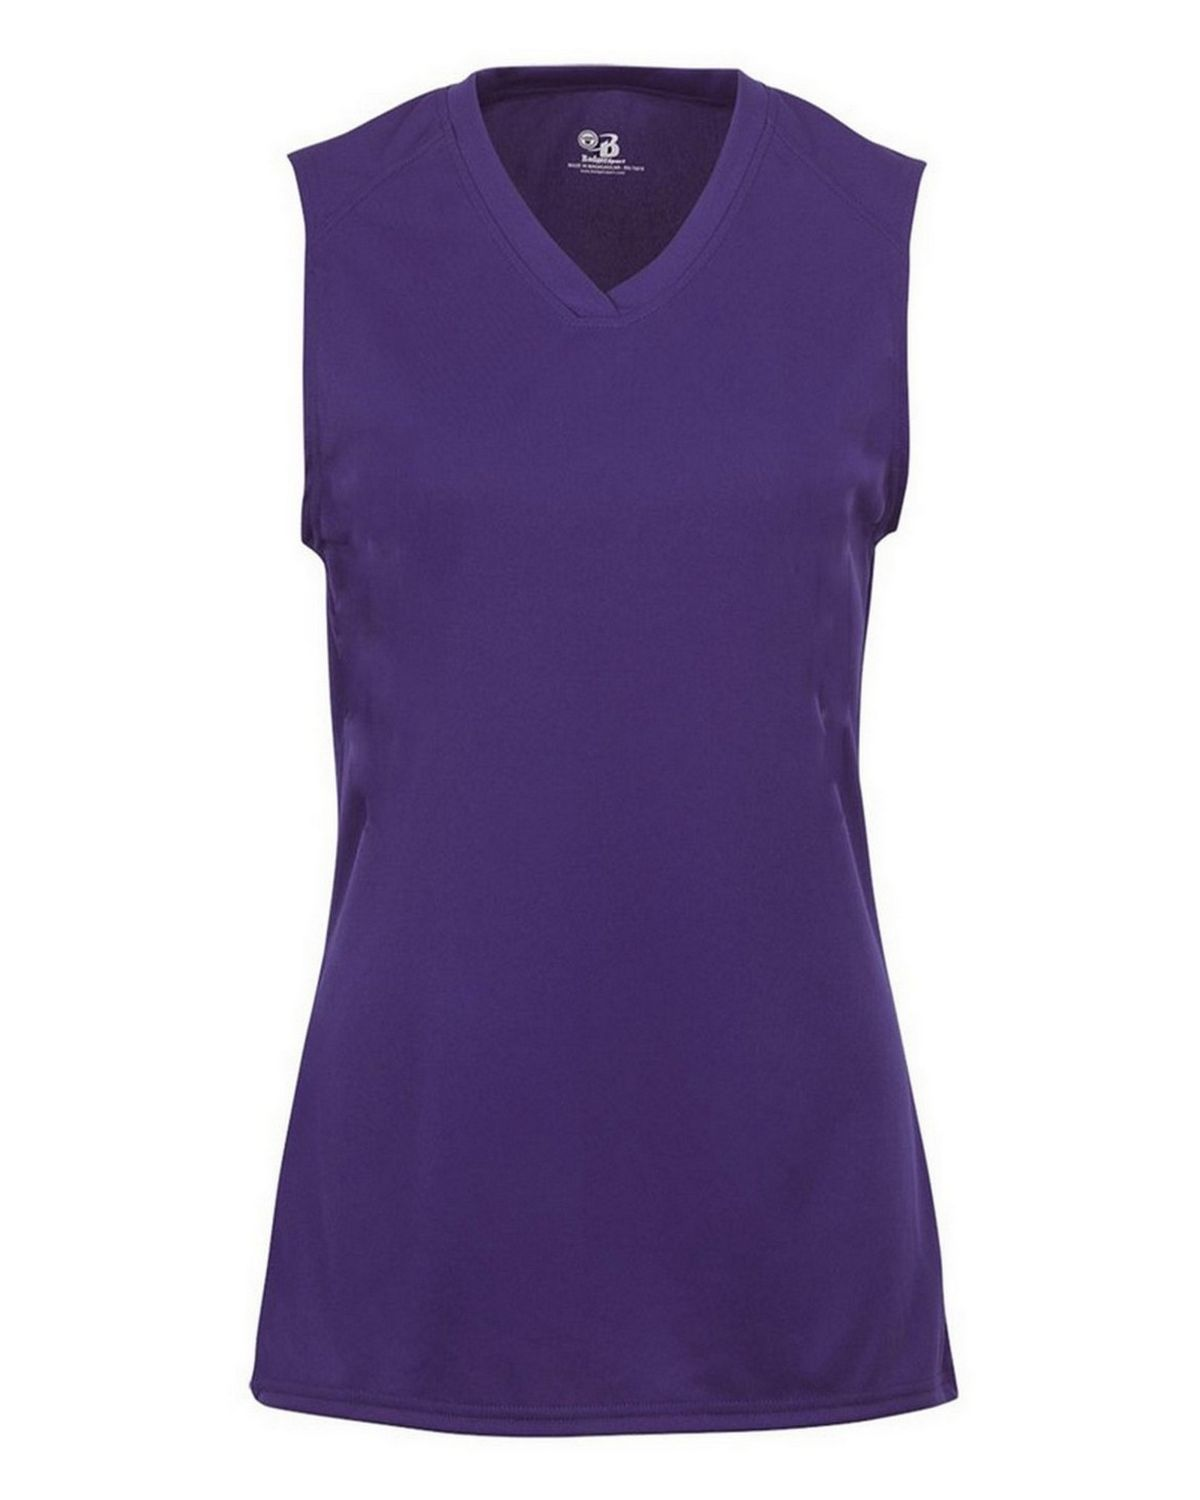 Badger 2163 BD Girl BCore Sleeveless Tee - Purple - L 2163